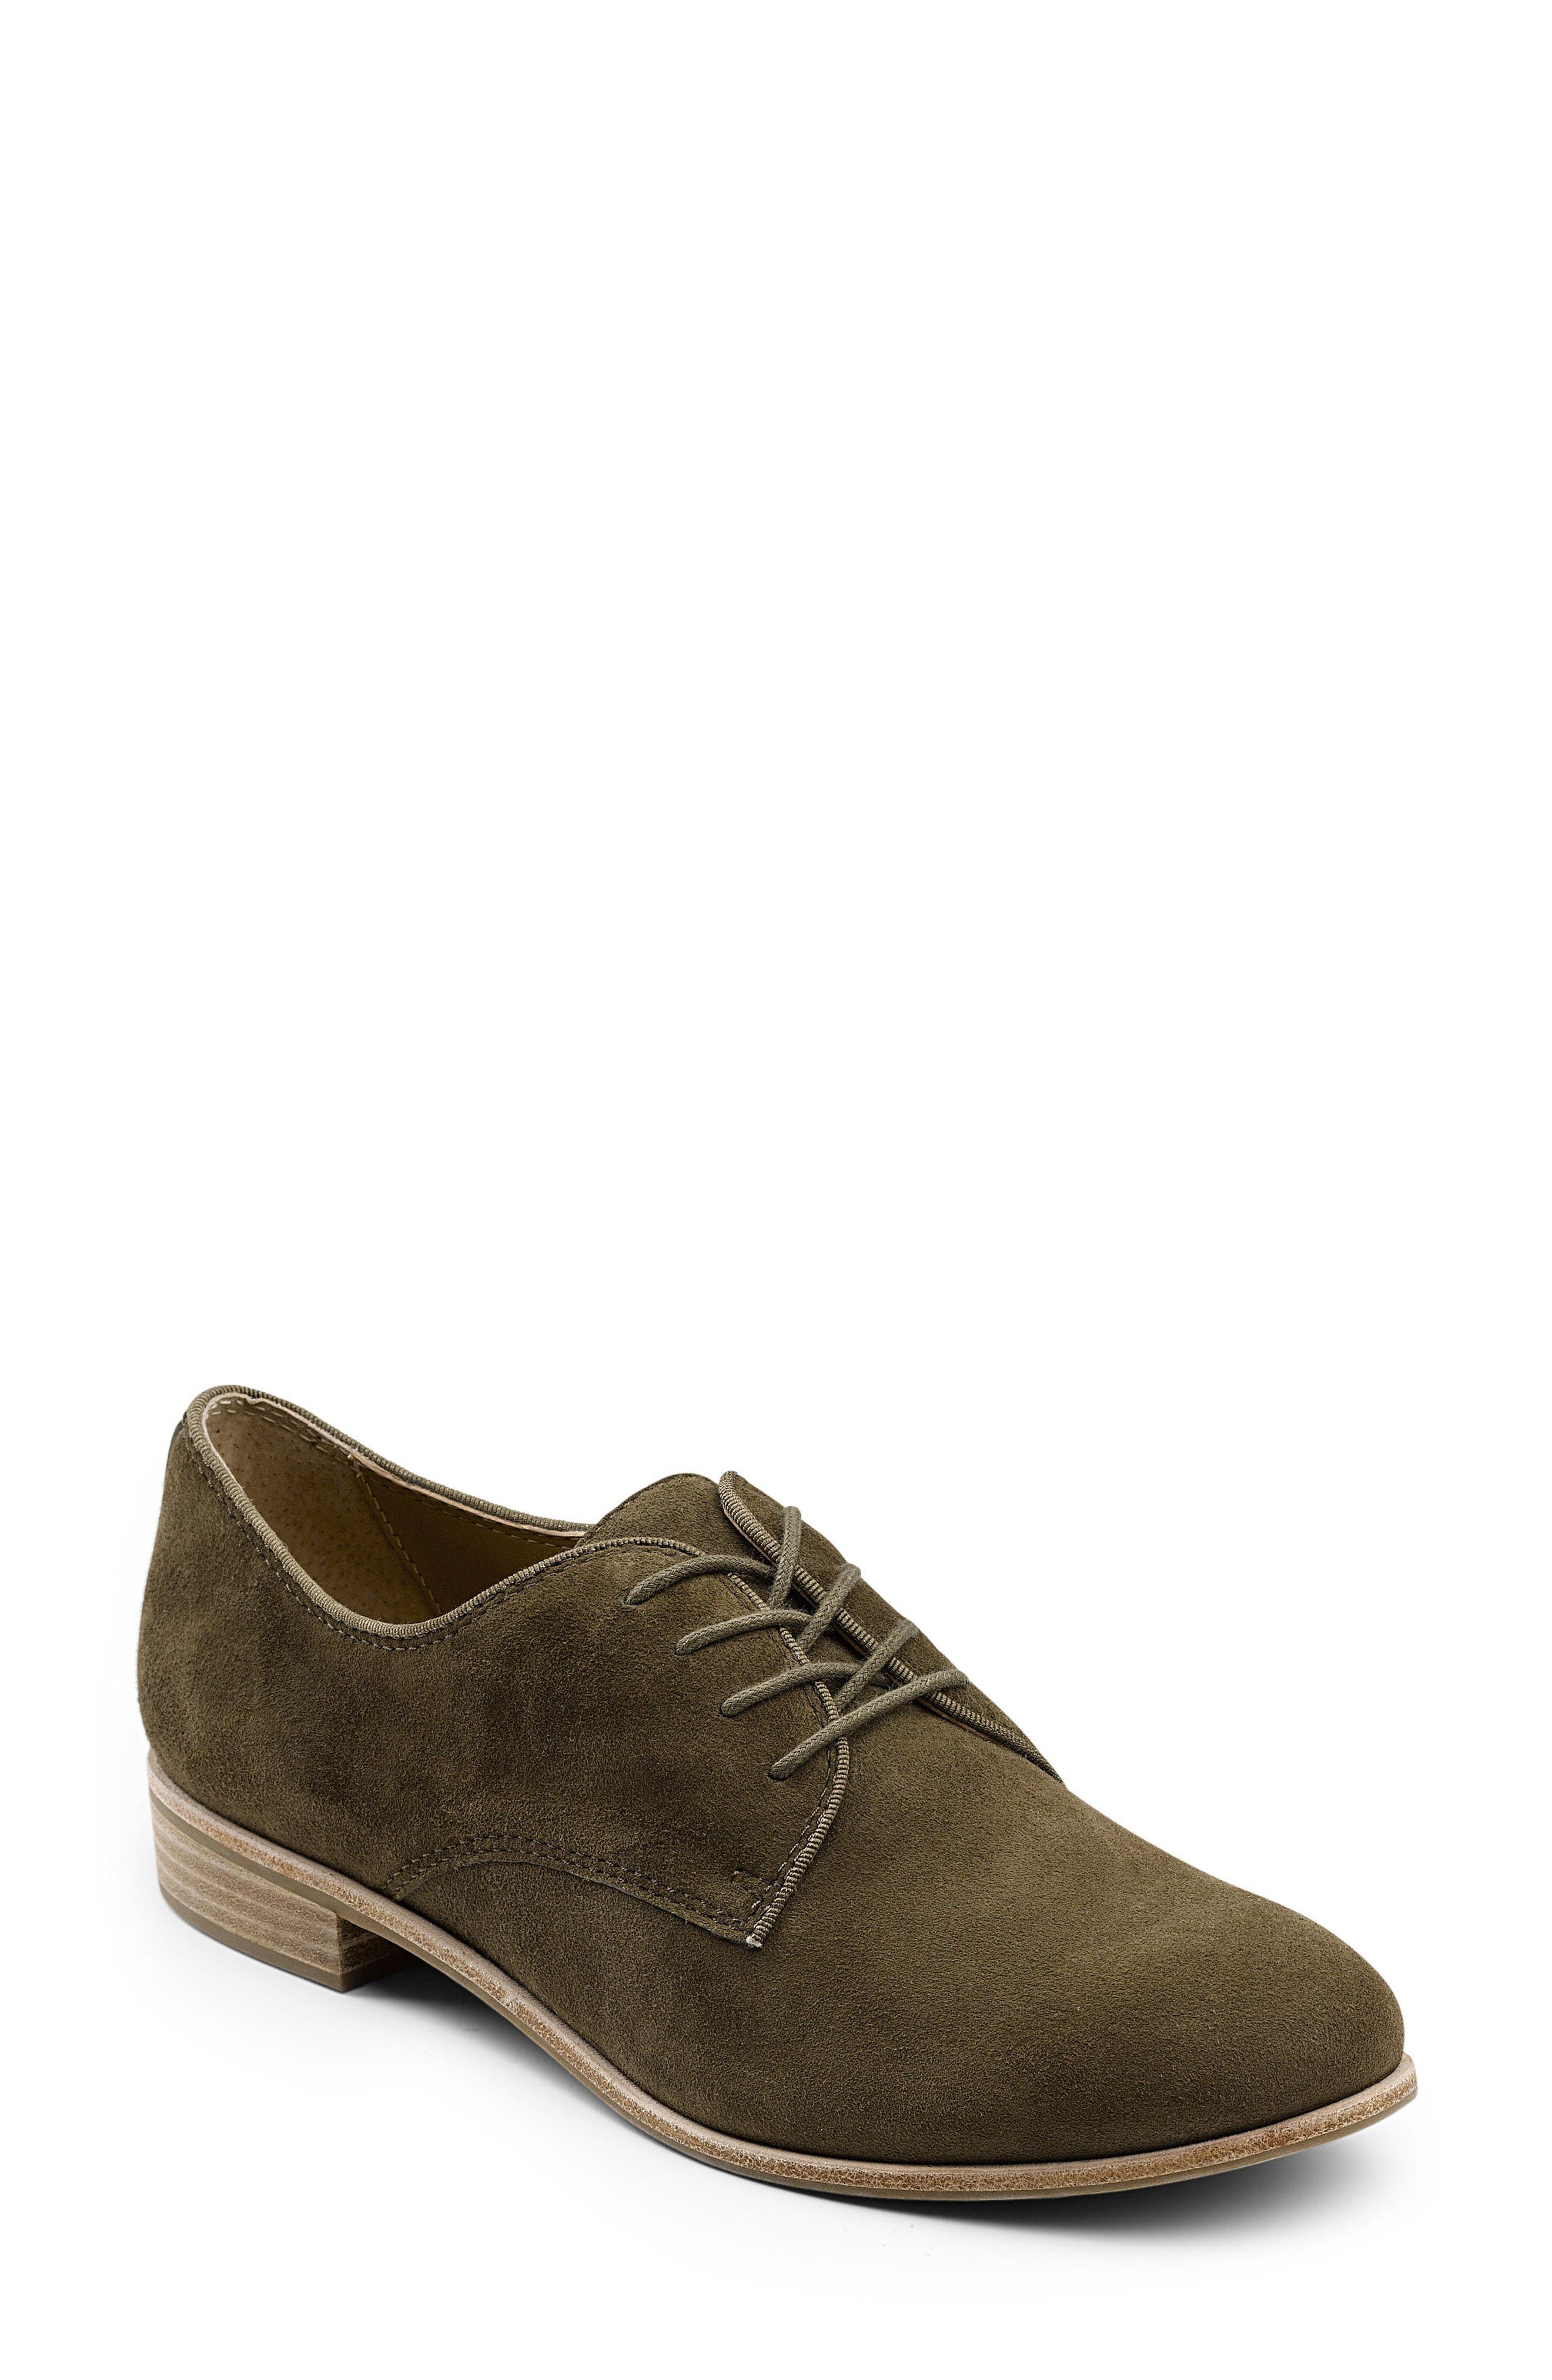 G.H. Bass & Co. 'Ella' Leather Oxford (Women)